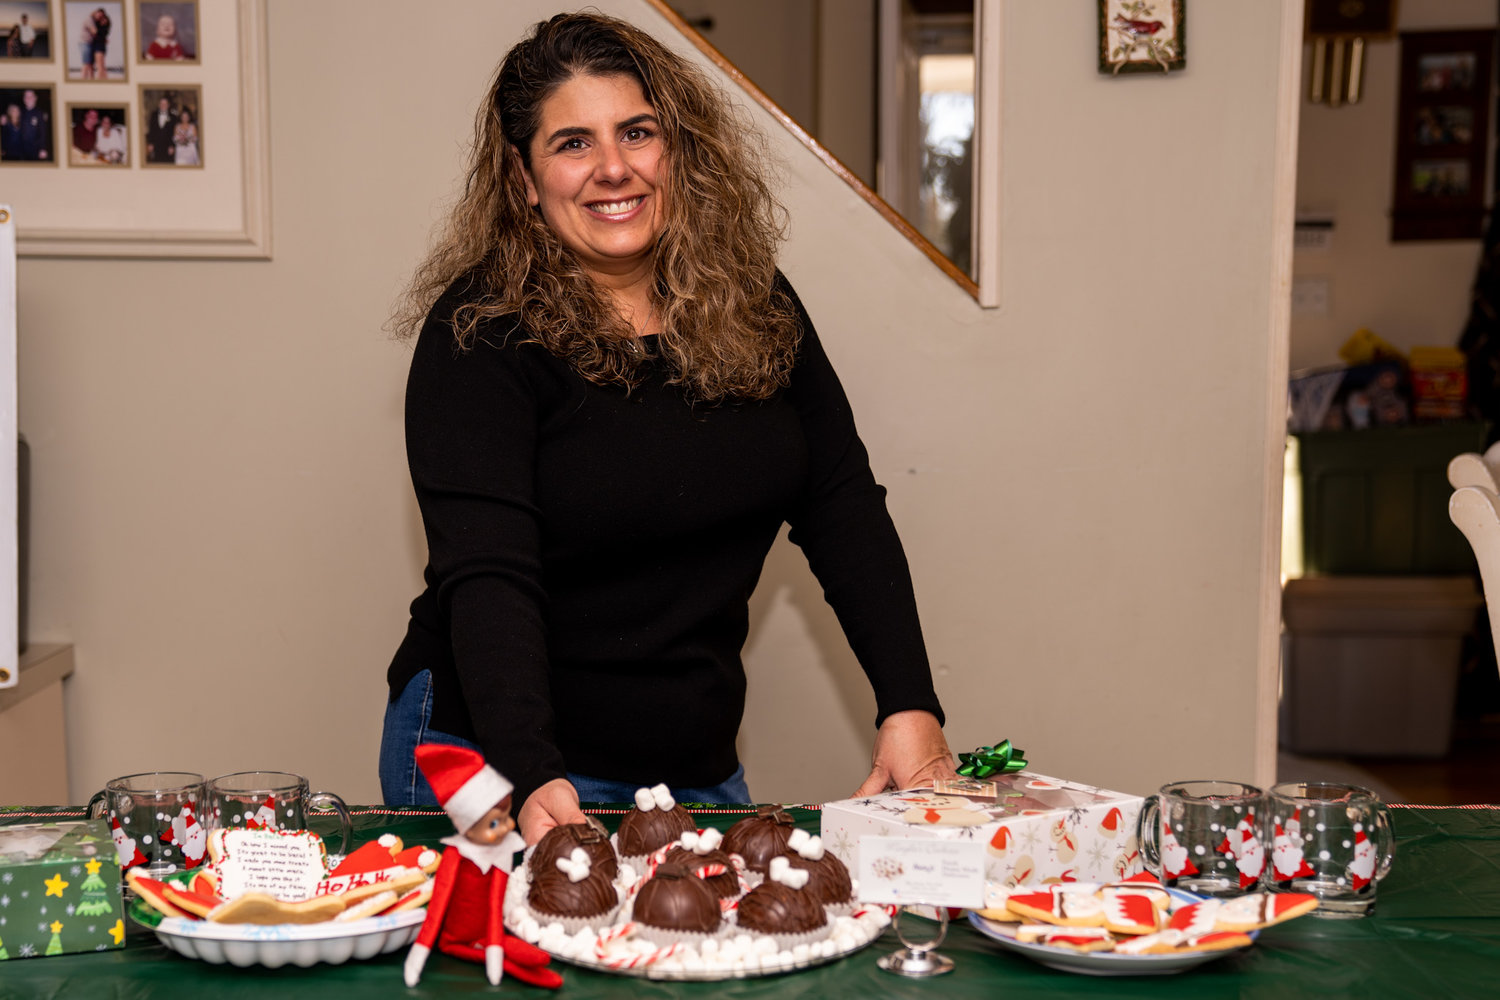 Popular home baker Meryle Alden had to cancel her much-sought-after cookie platters for the holiday season due to overcrowding concerns with the pandemic, but has found a new Christmastime tradition with hot cocoa bombs and DIY cookie-decorating kits.